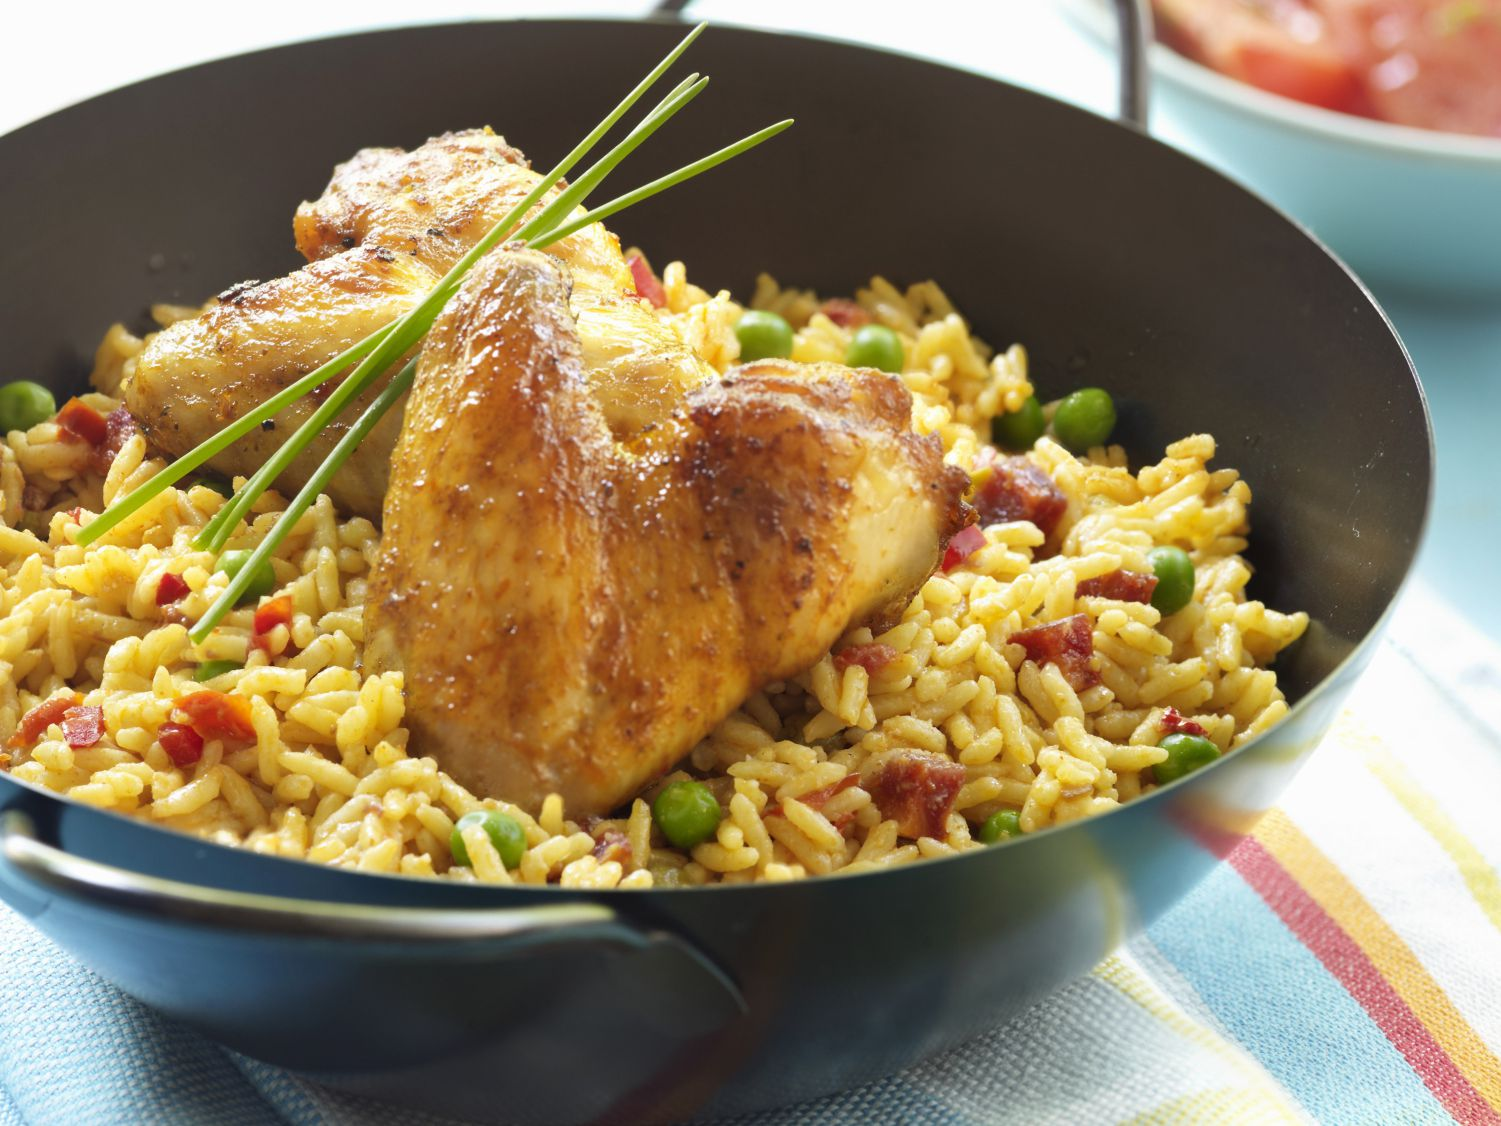 Baked Chicken With Yellow Rice Recipe